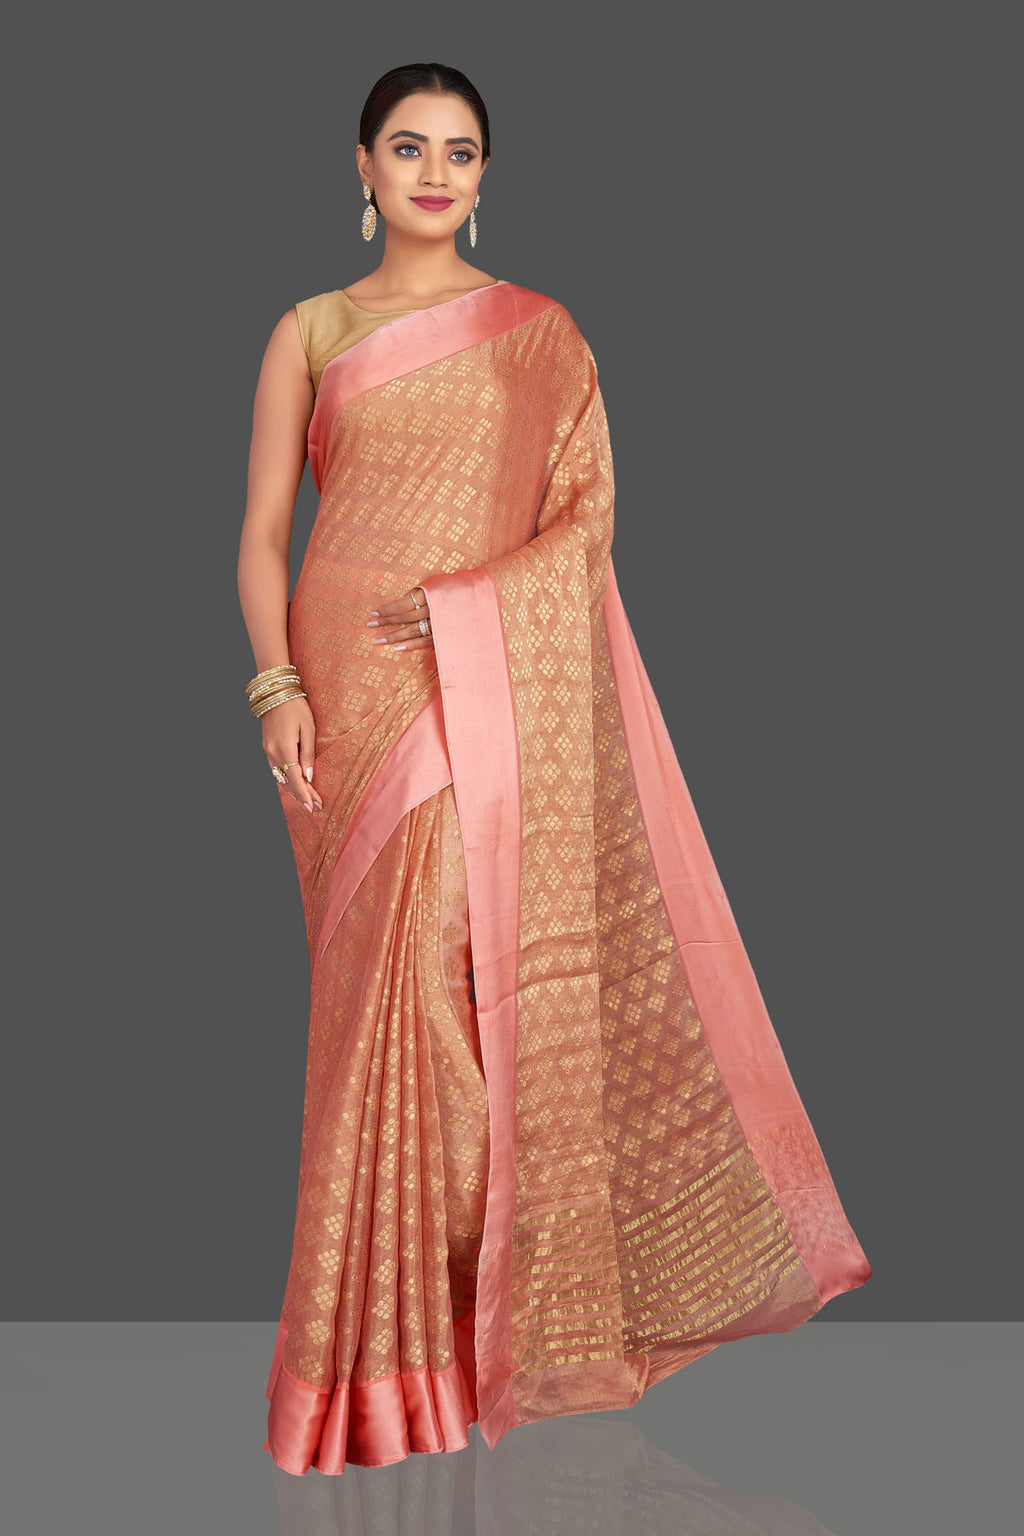 Shop stunning peach crepe georgette sari online in USA with zari buta. Shop designer sarees, printed sarees, embroidered sarees, crepe sarees in USA from Pure Elegance Indian fashion store in USA.-full view